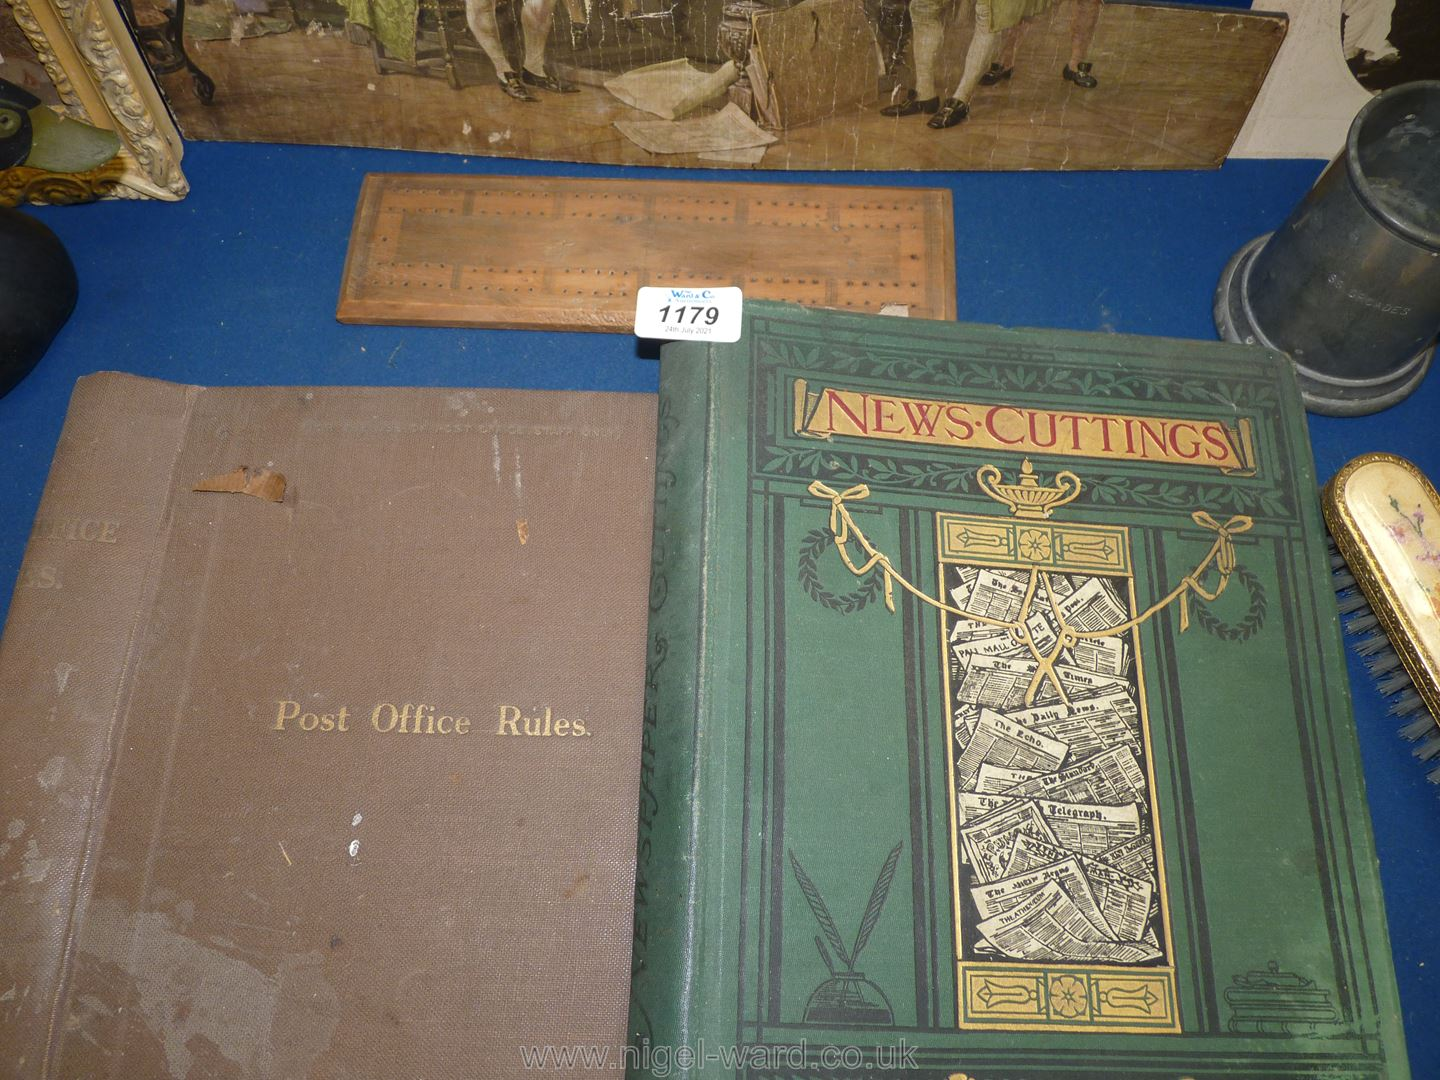 A box of miscellanea including tins, boxes, old documents, original pen and ink cartoon, tankard, - Image 2 of 3